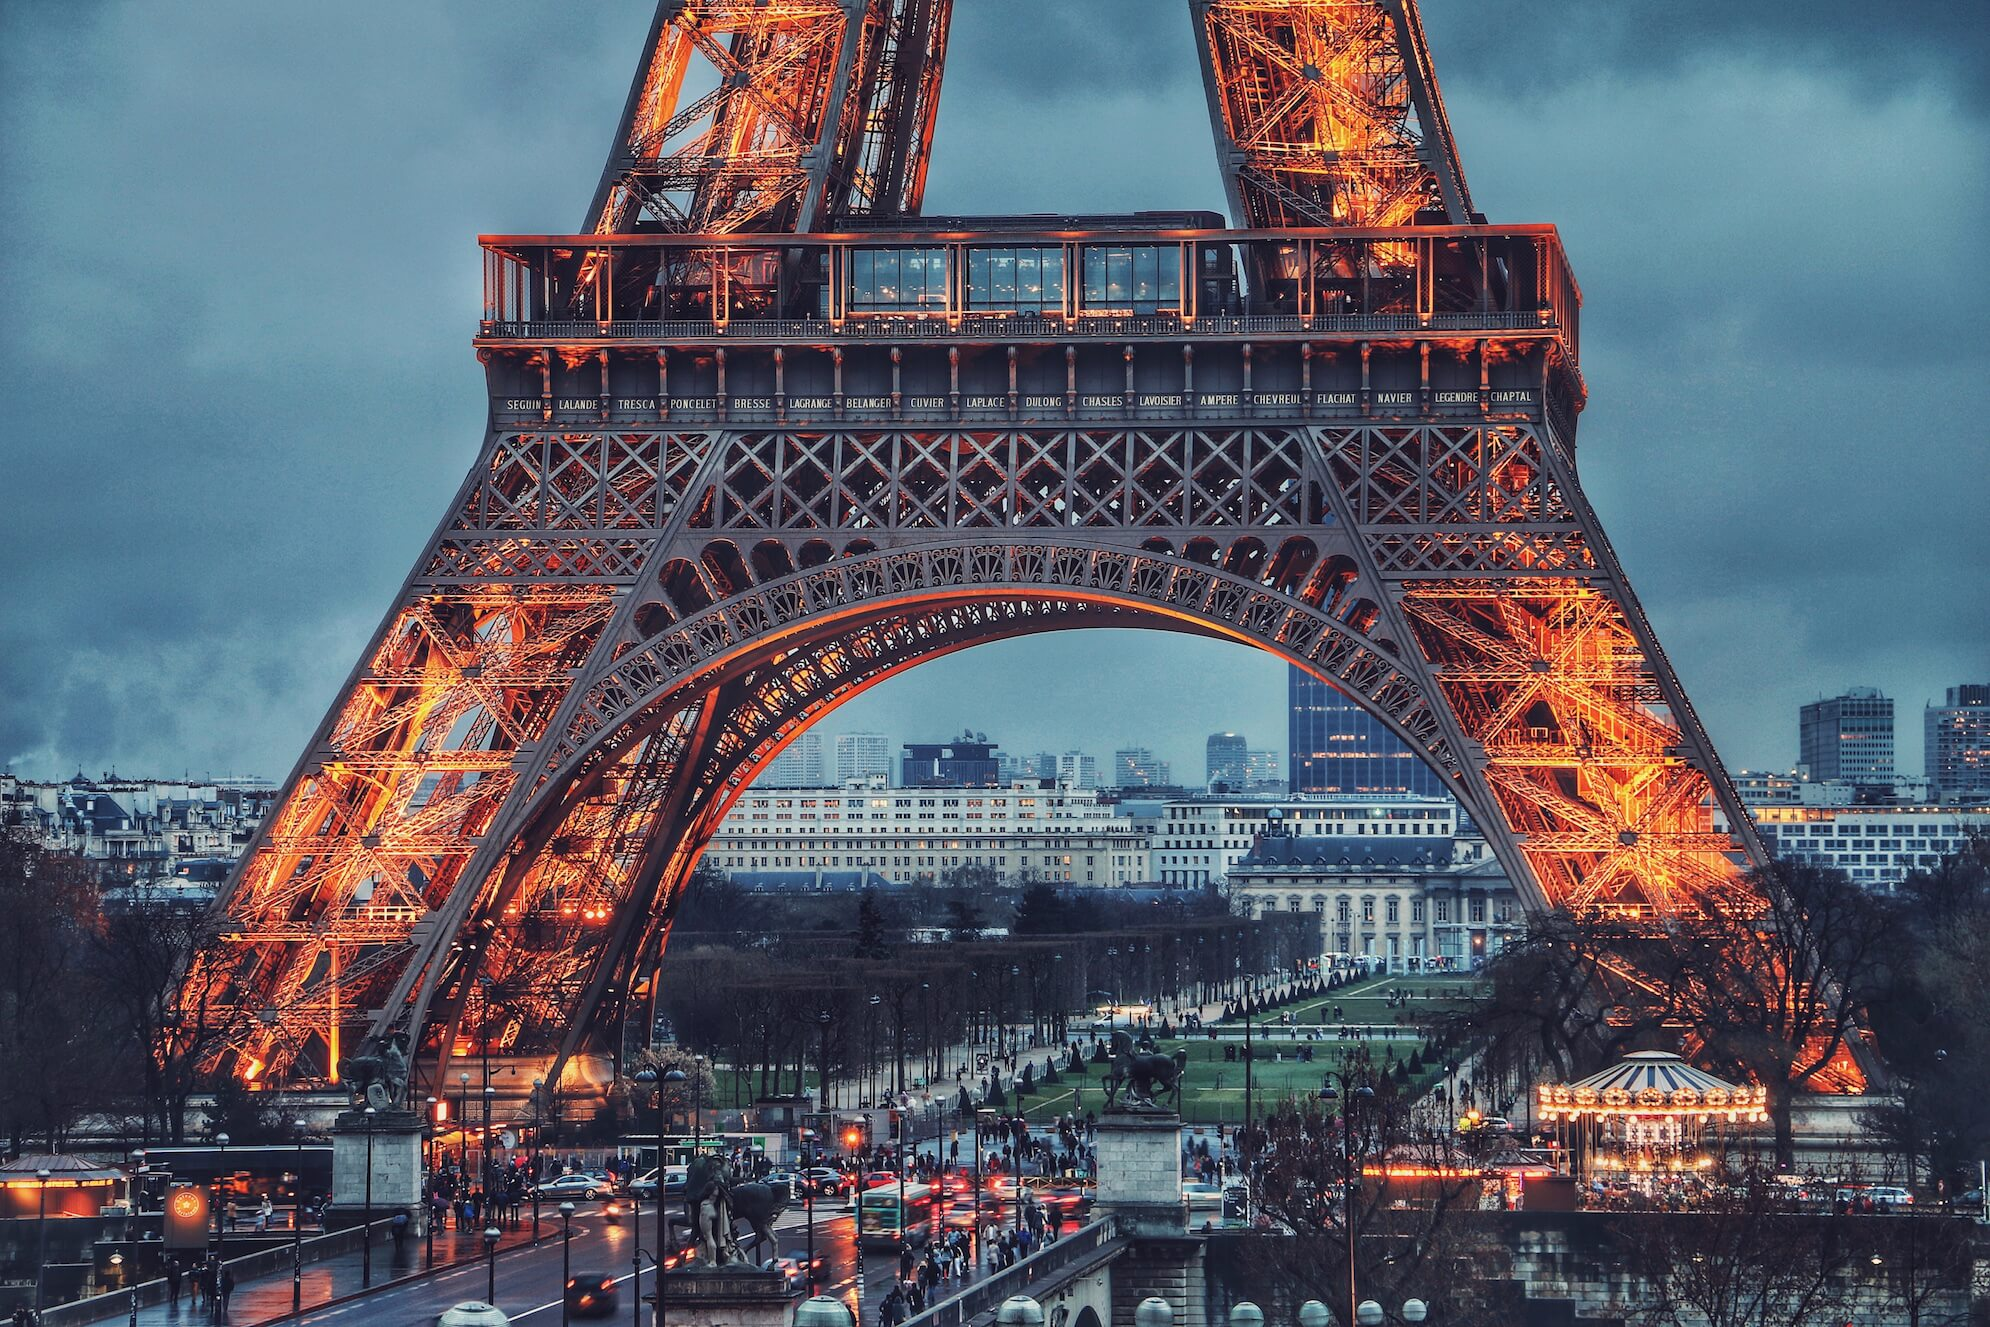 The Eiffel Tower, part of the 3-day Paris Charming Package